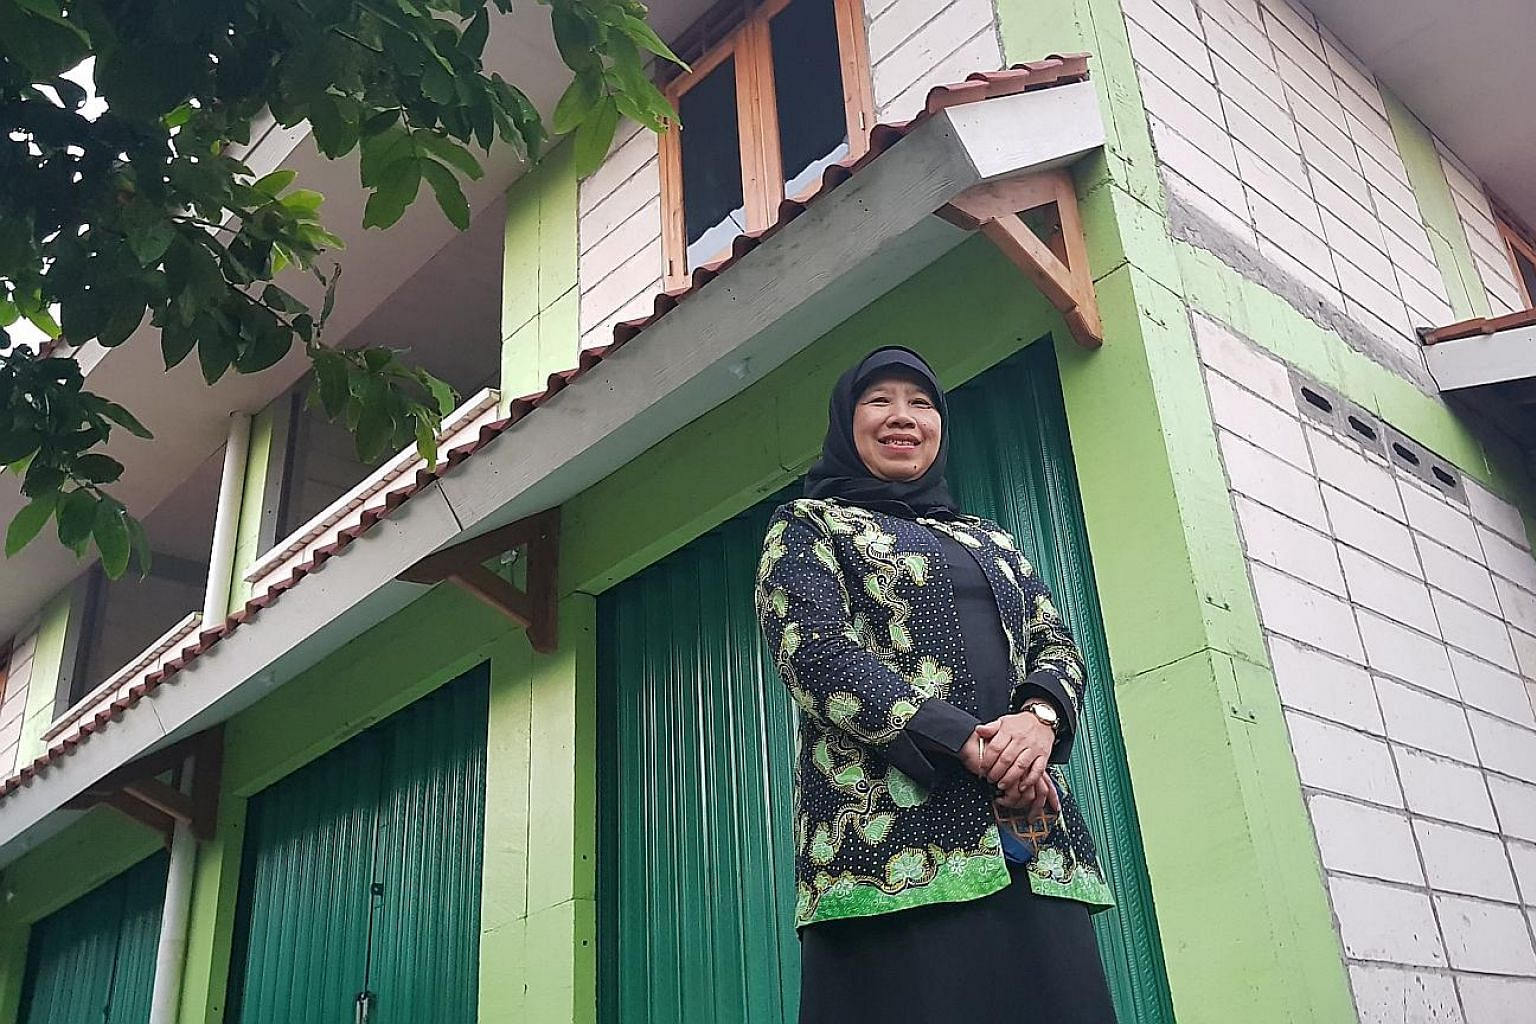 Shopkeeper Ngadiyem in front of her dome house - one of 80 such houses in New Ngelepen village in Sleman. They are made of concrete and reinforced with steel, which can help them withstand storms and quakes. They also look similar to the homes in the